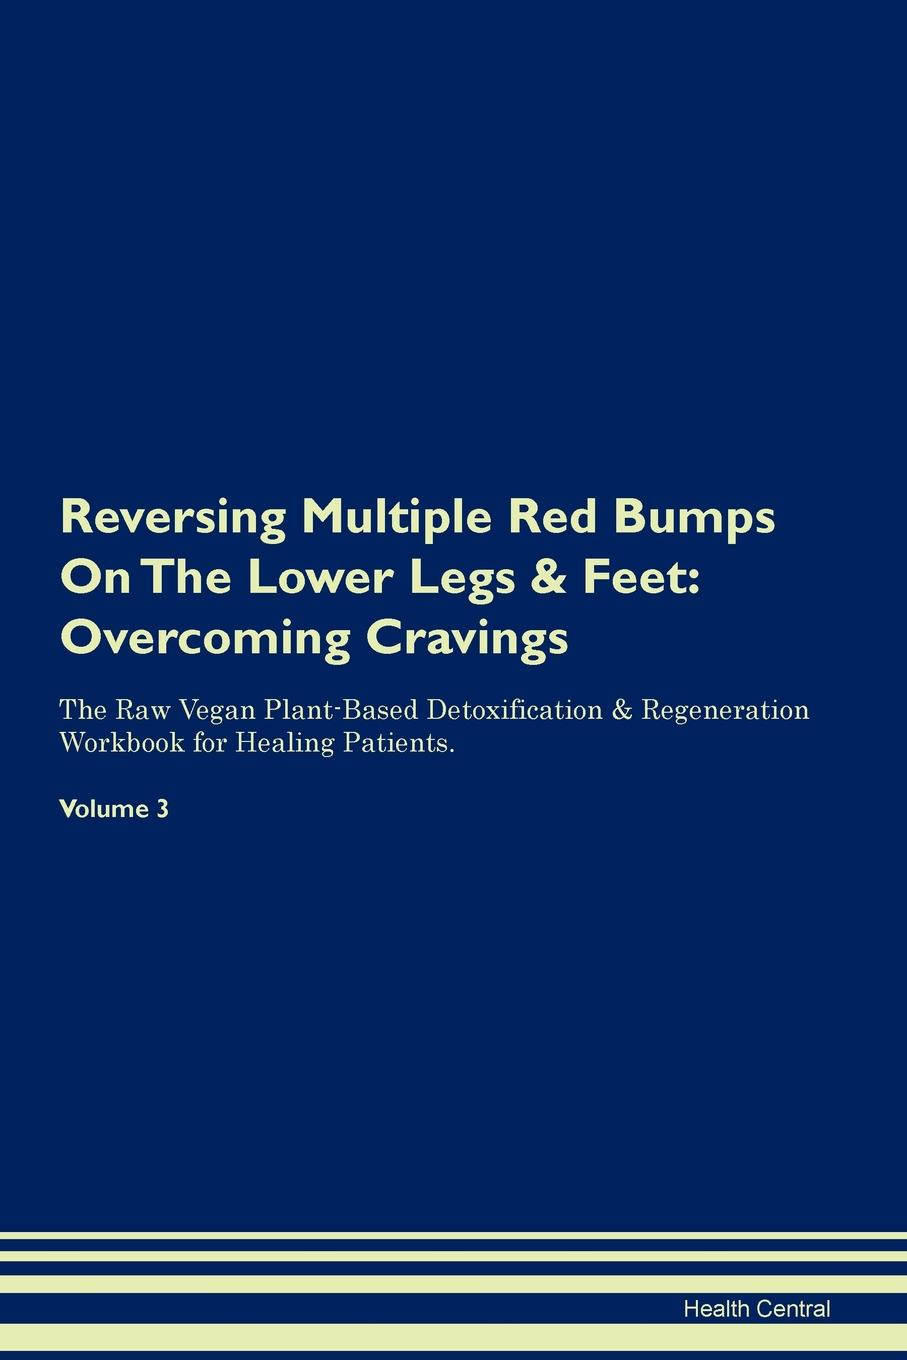 Health Central Reversing Multiple Red Bumps On The Lower Legs . Feet. Overcoming Cravings The Raw Vegan Plant-Based Detoxification . Regeneration Workbook for Healing Patients. Volume 3